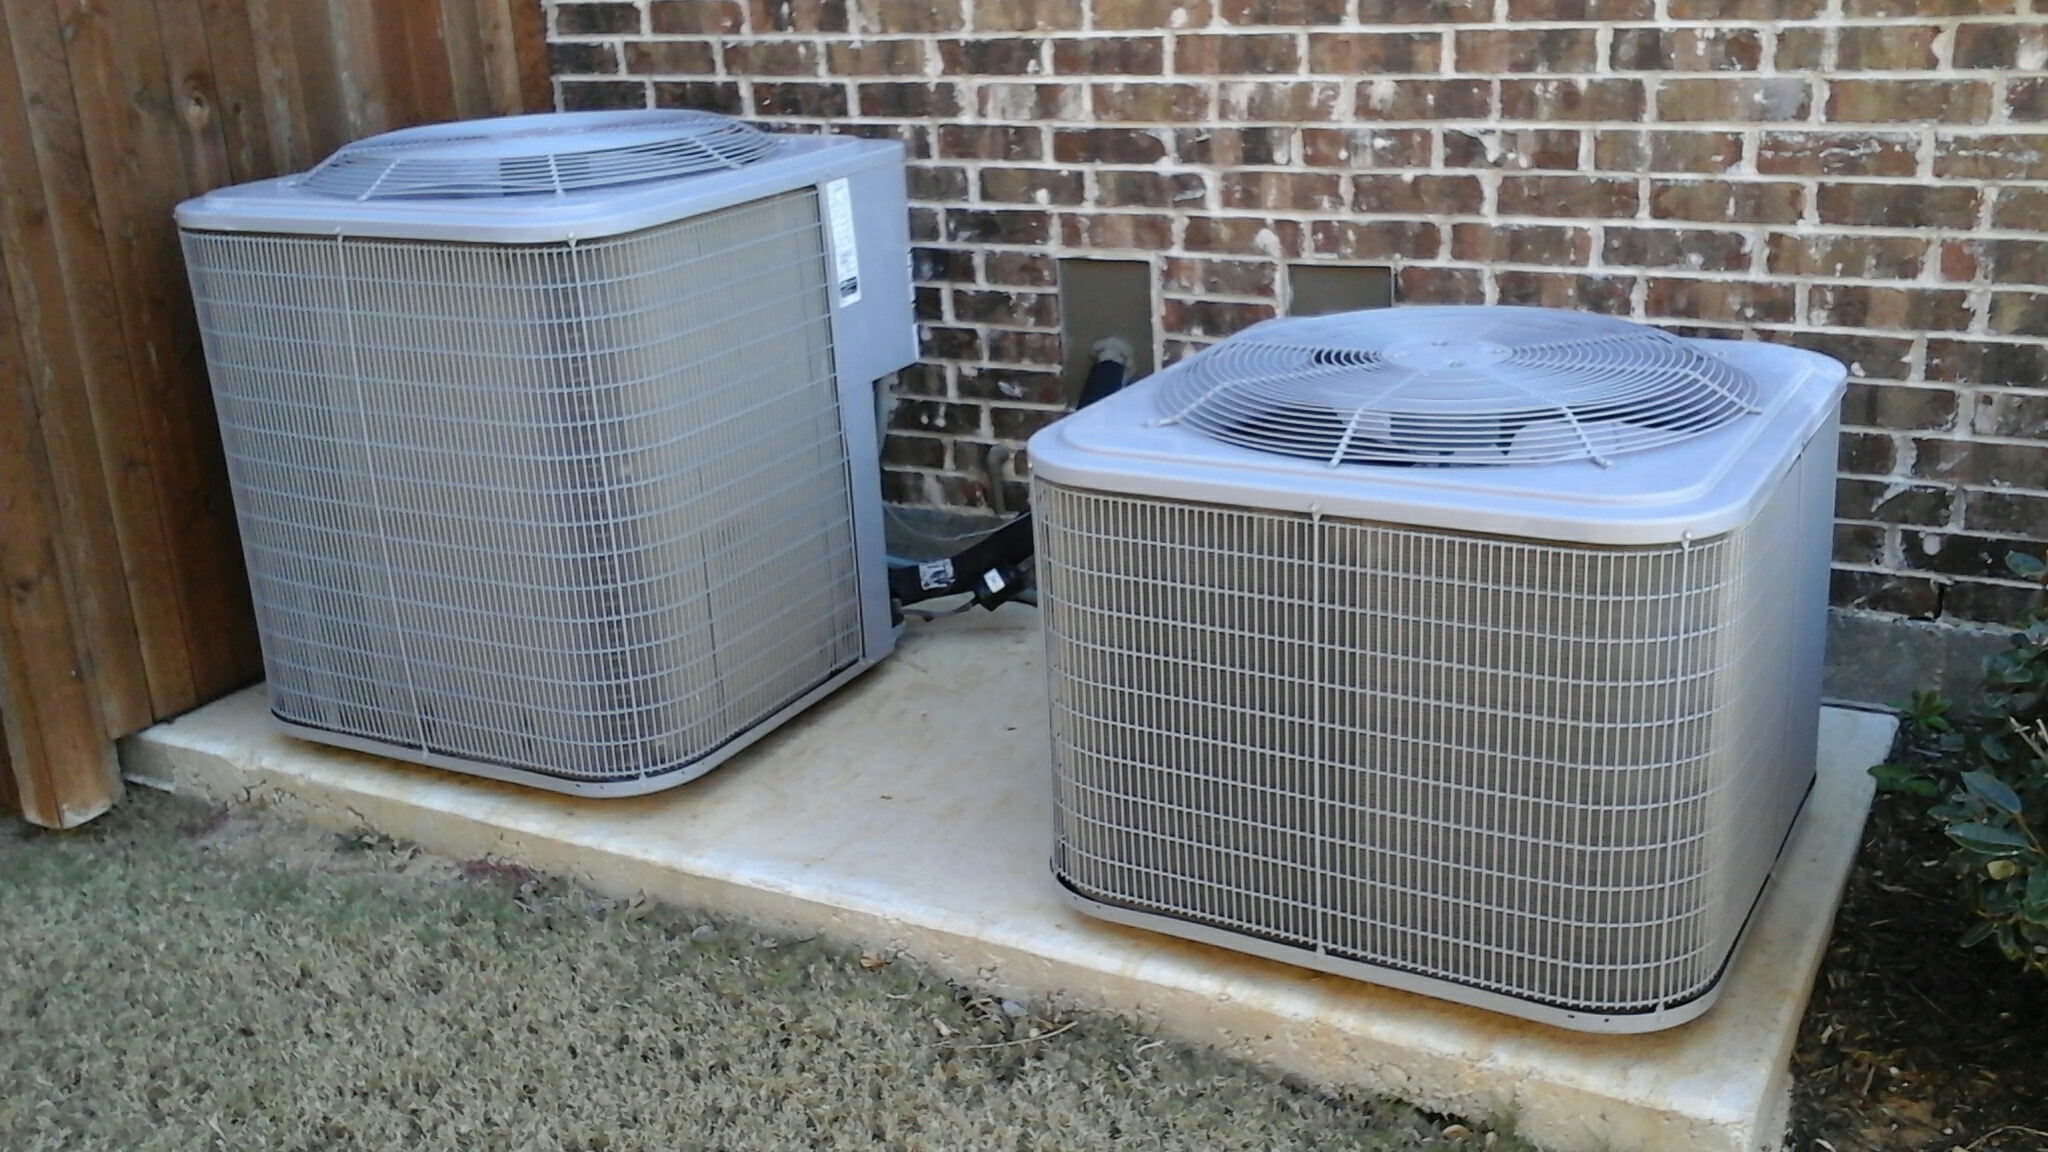 Argyle, TX - Performed maintenance on two Carrier air conditioners and heaters. Replaced two media filters.